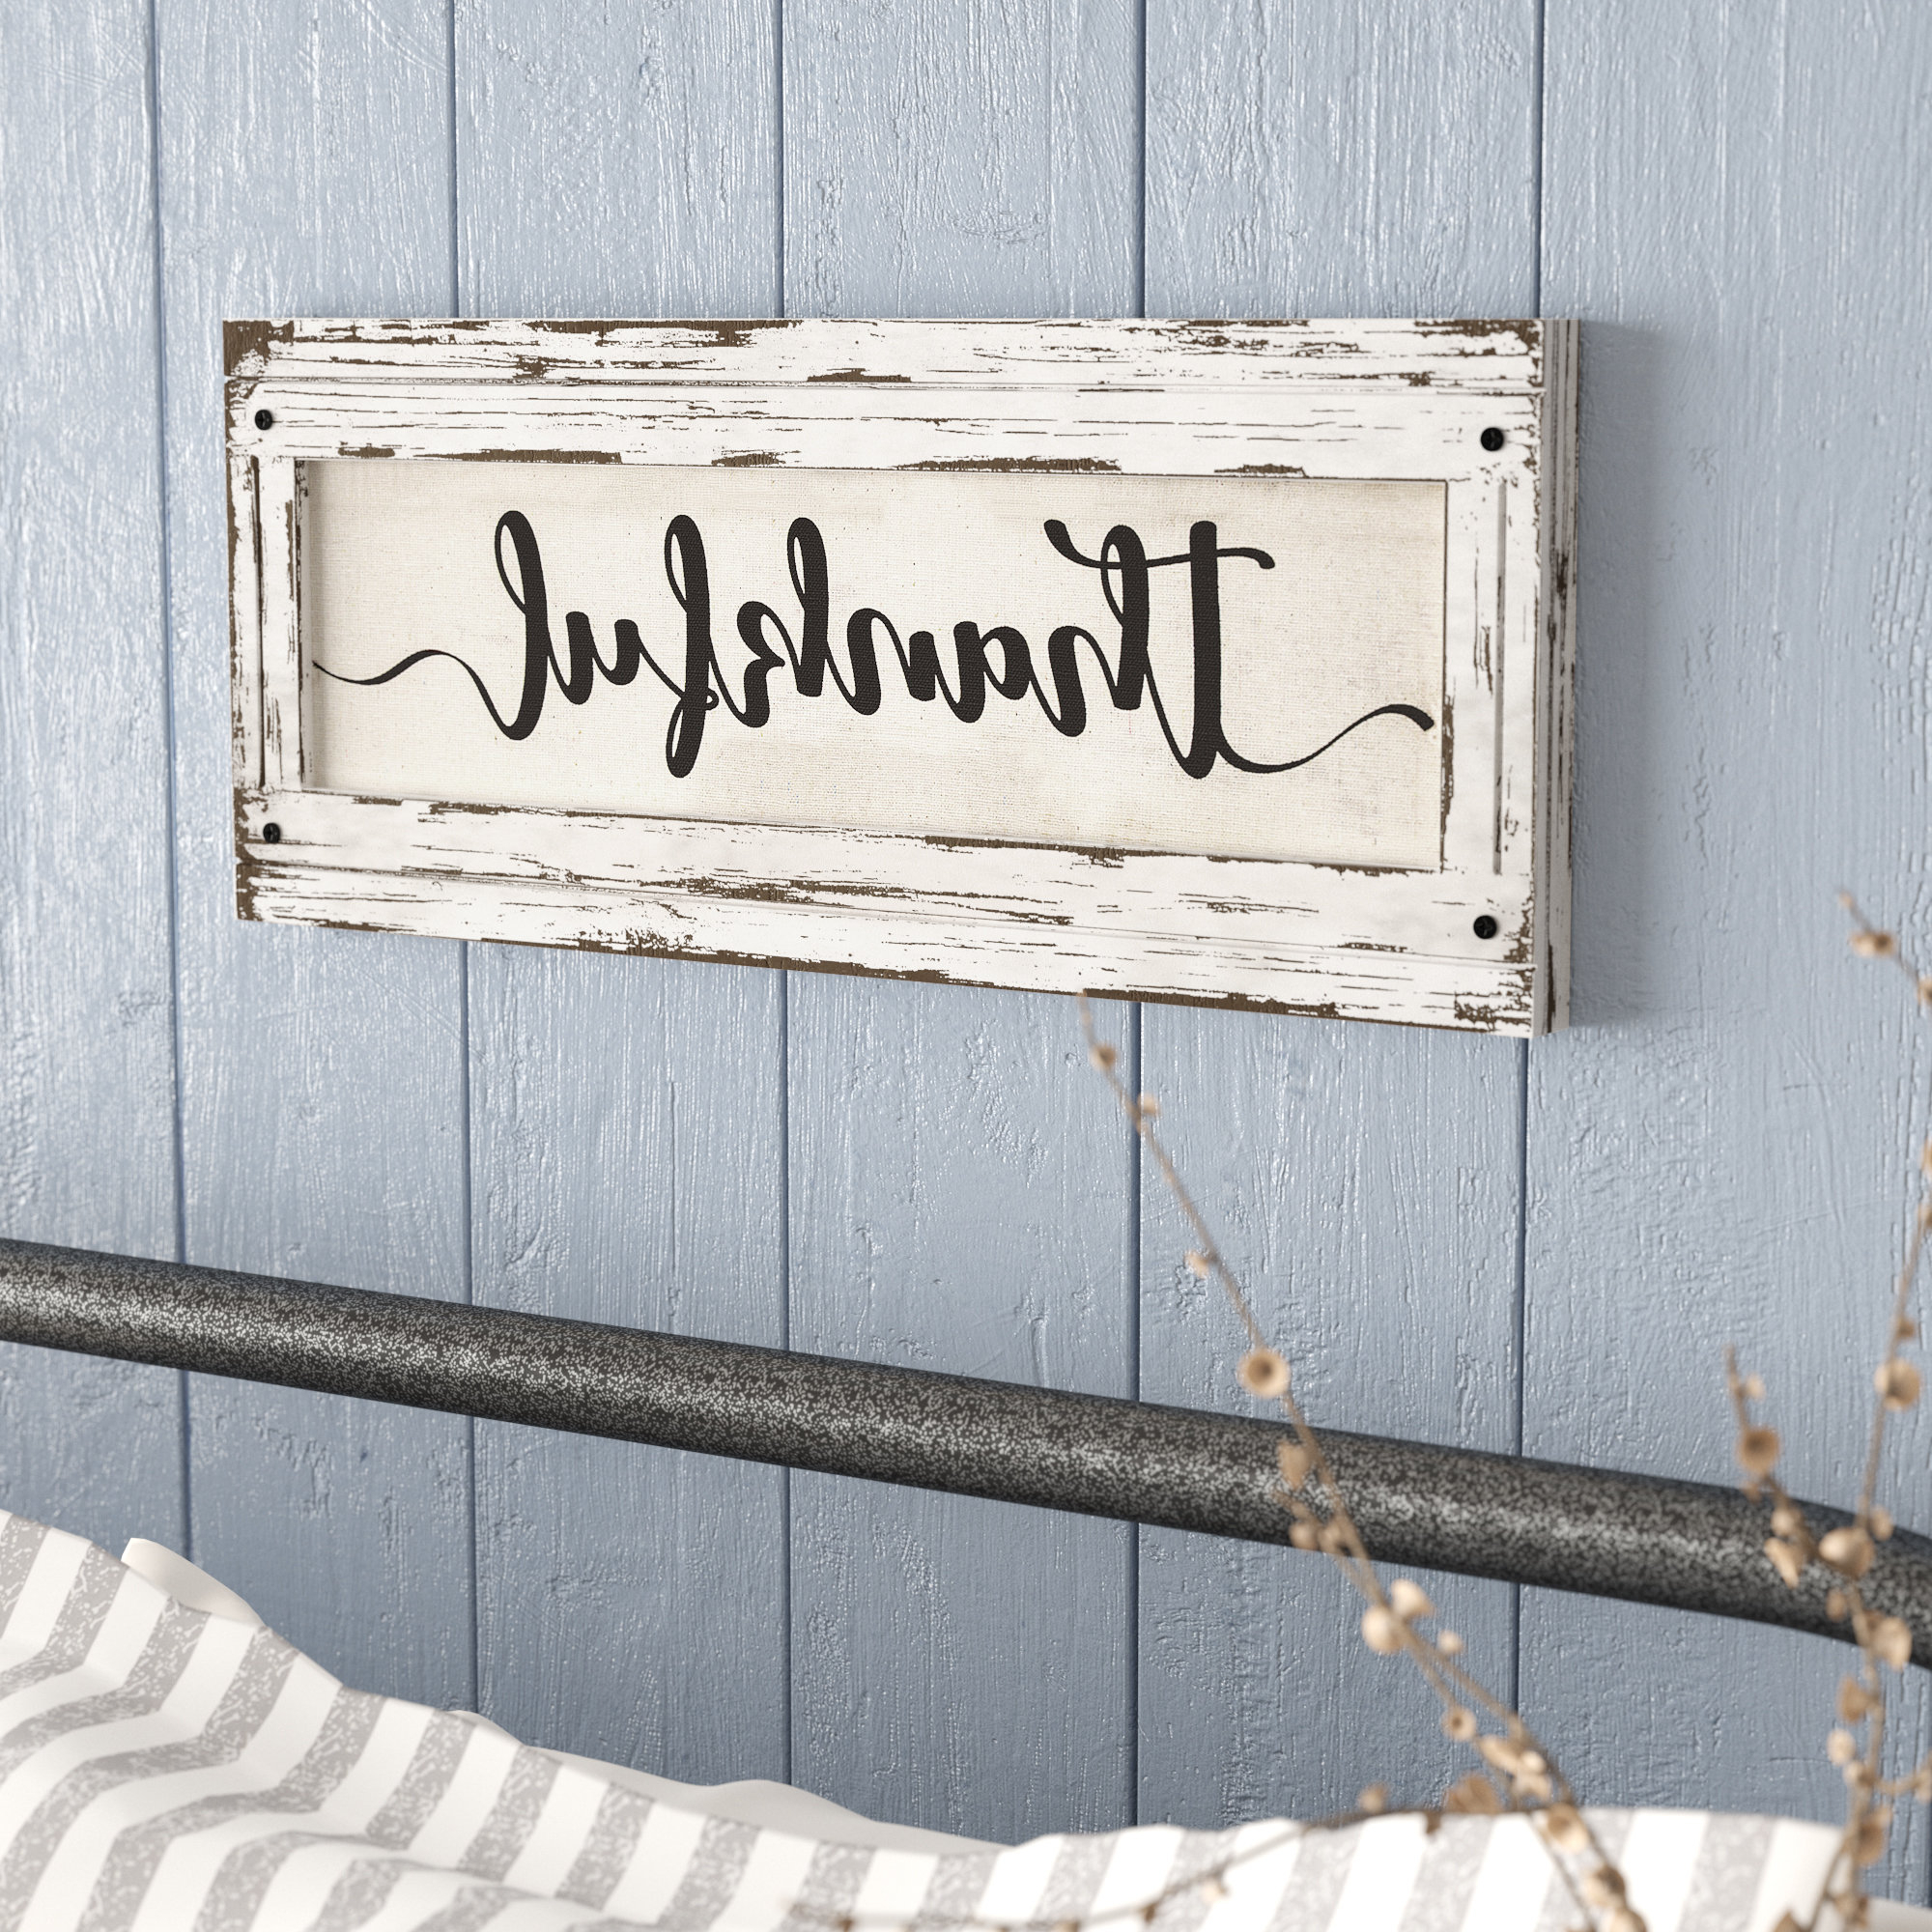 Thankful' Wood Framed Inspirational Canvas Sign Farmhouse Wall Décor Pertaining To 2019 Fawcett Thankful Heart Wall Decor (Gallery 6 of 20)